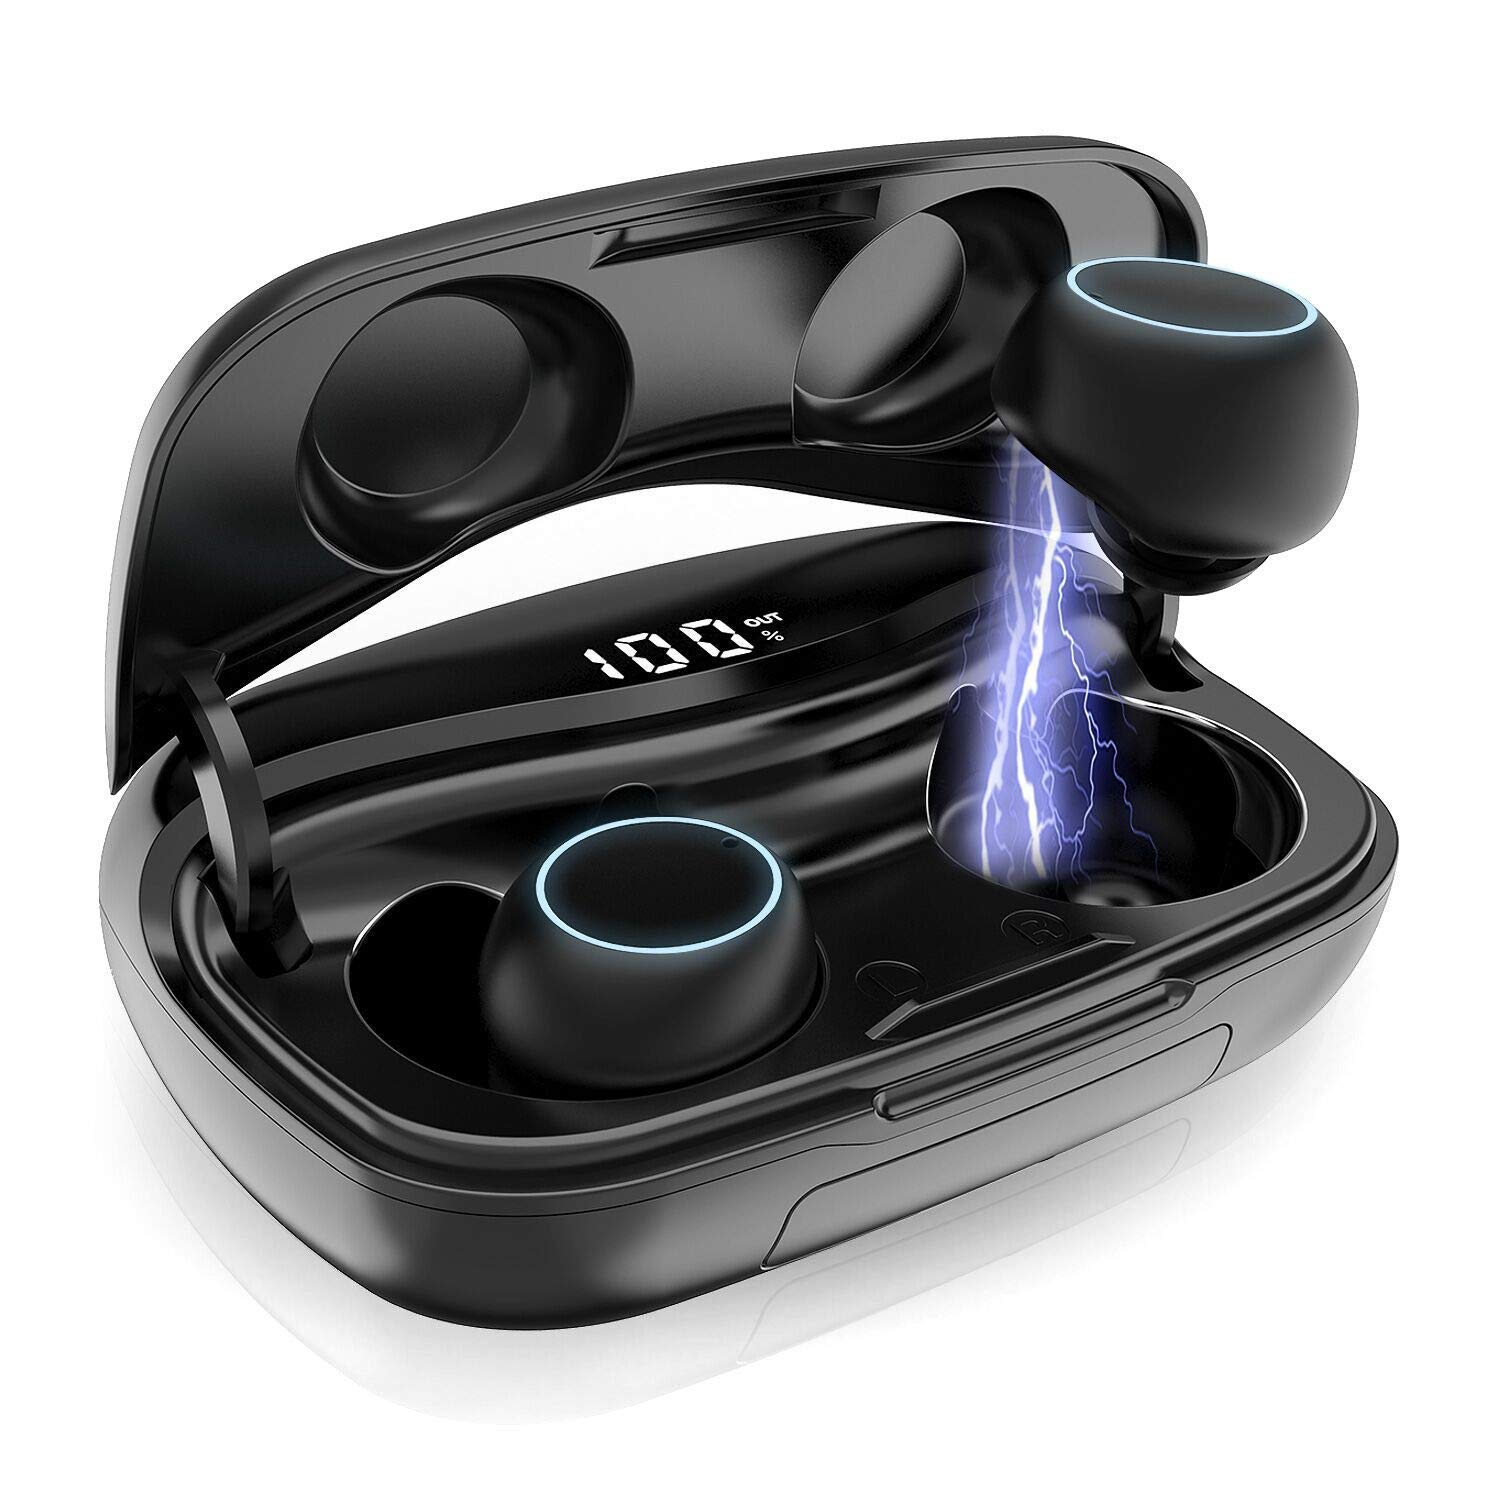 True Wireless Earbuds, Bluetooth 5.0 Wireless Earphones in-Ear 3D Stereo Wireless Headphones IPX7 Waterproof Bluetooth Earbuds Mic 60H Playtime with 3500mAh Charging Case, Smart Touch, Instant Pairing